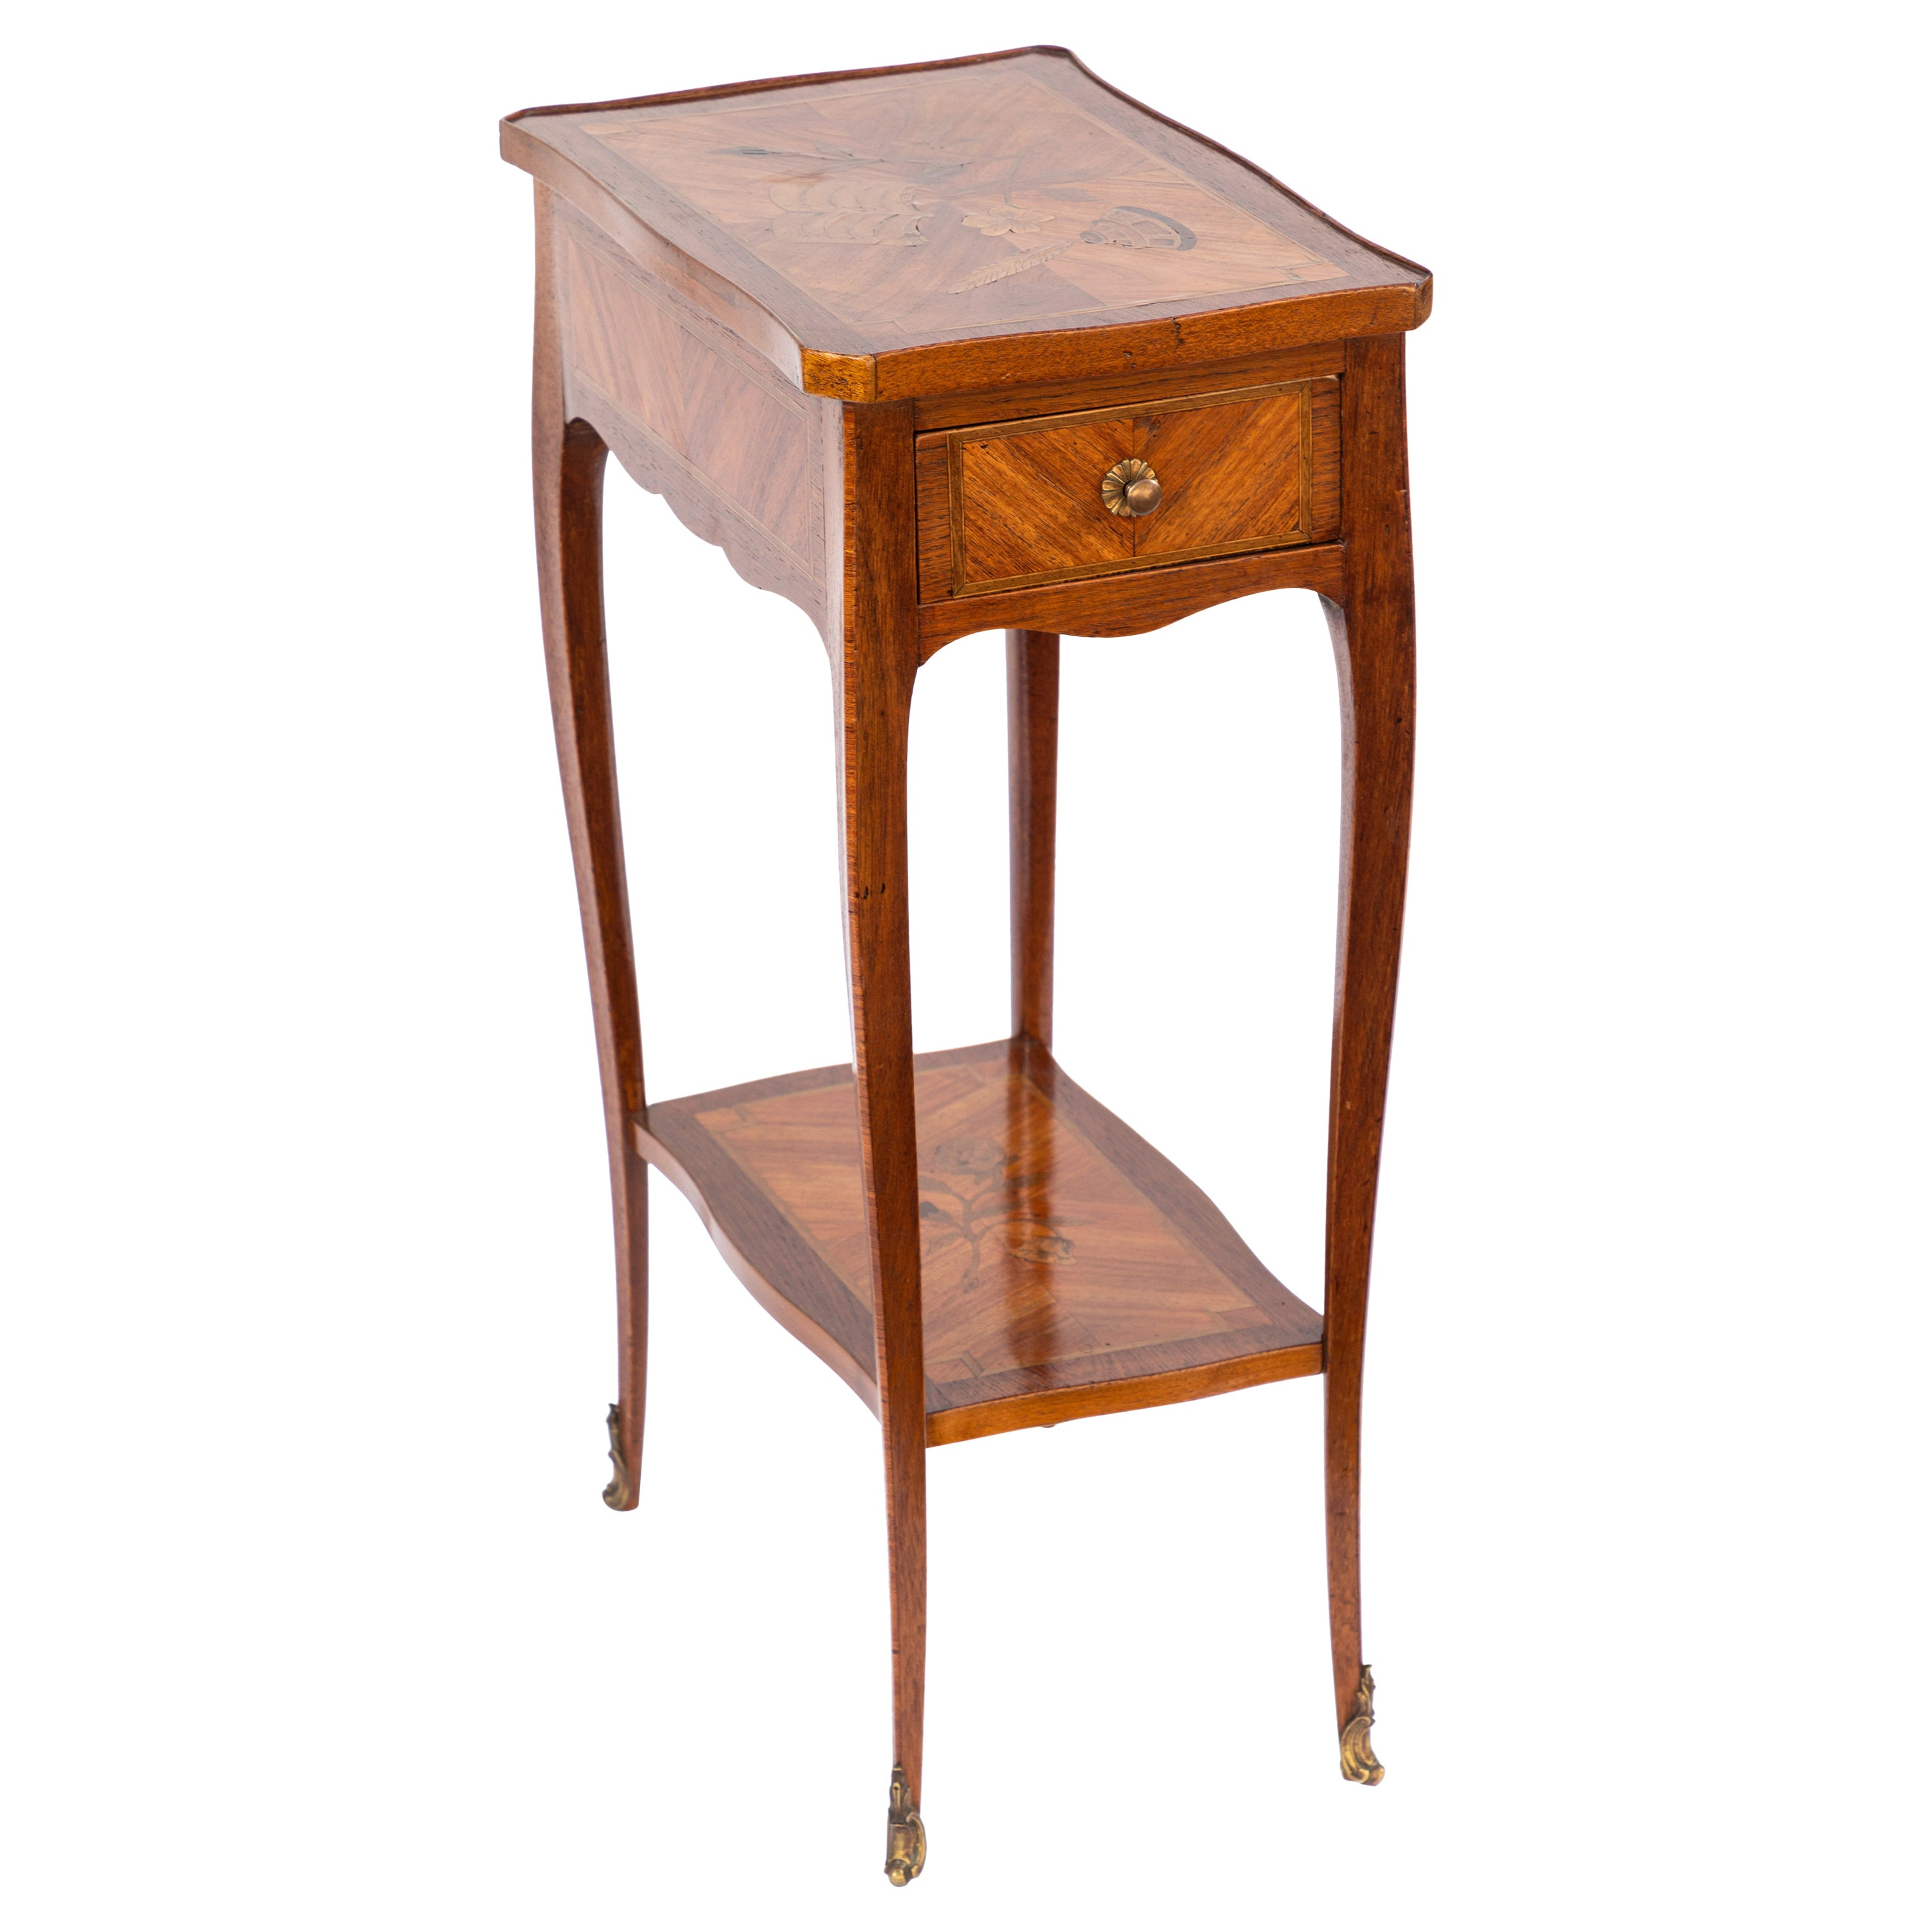 1900s French Inlaid Side Table